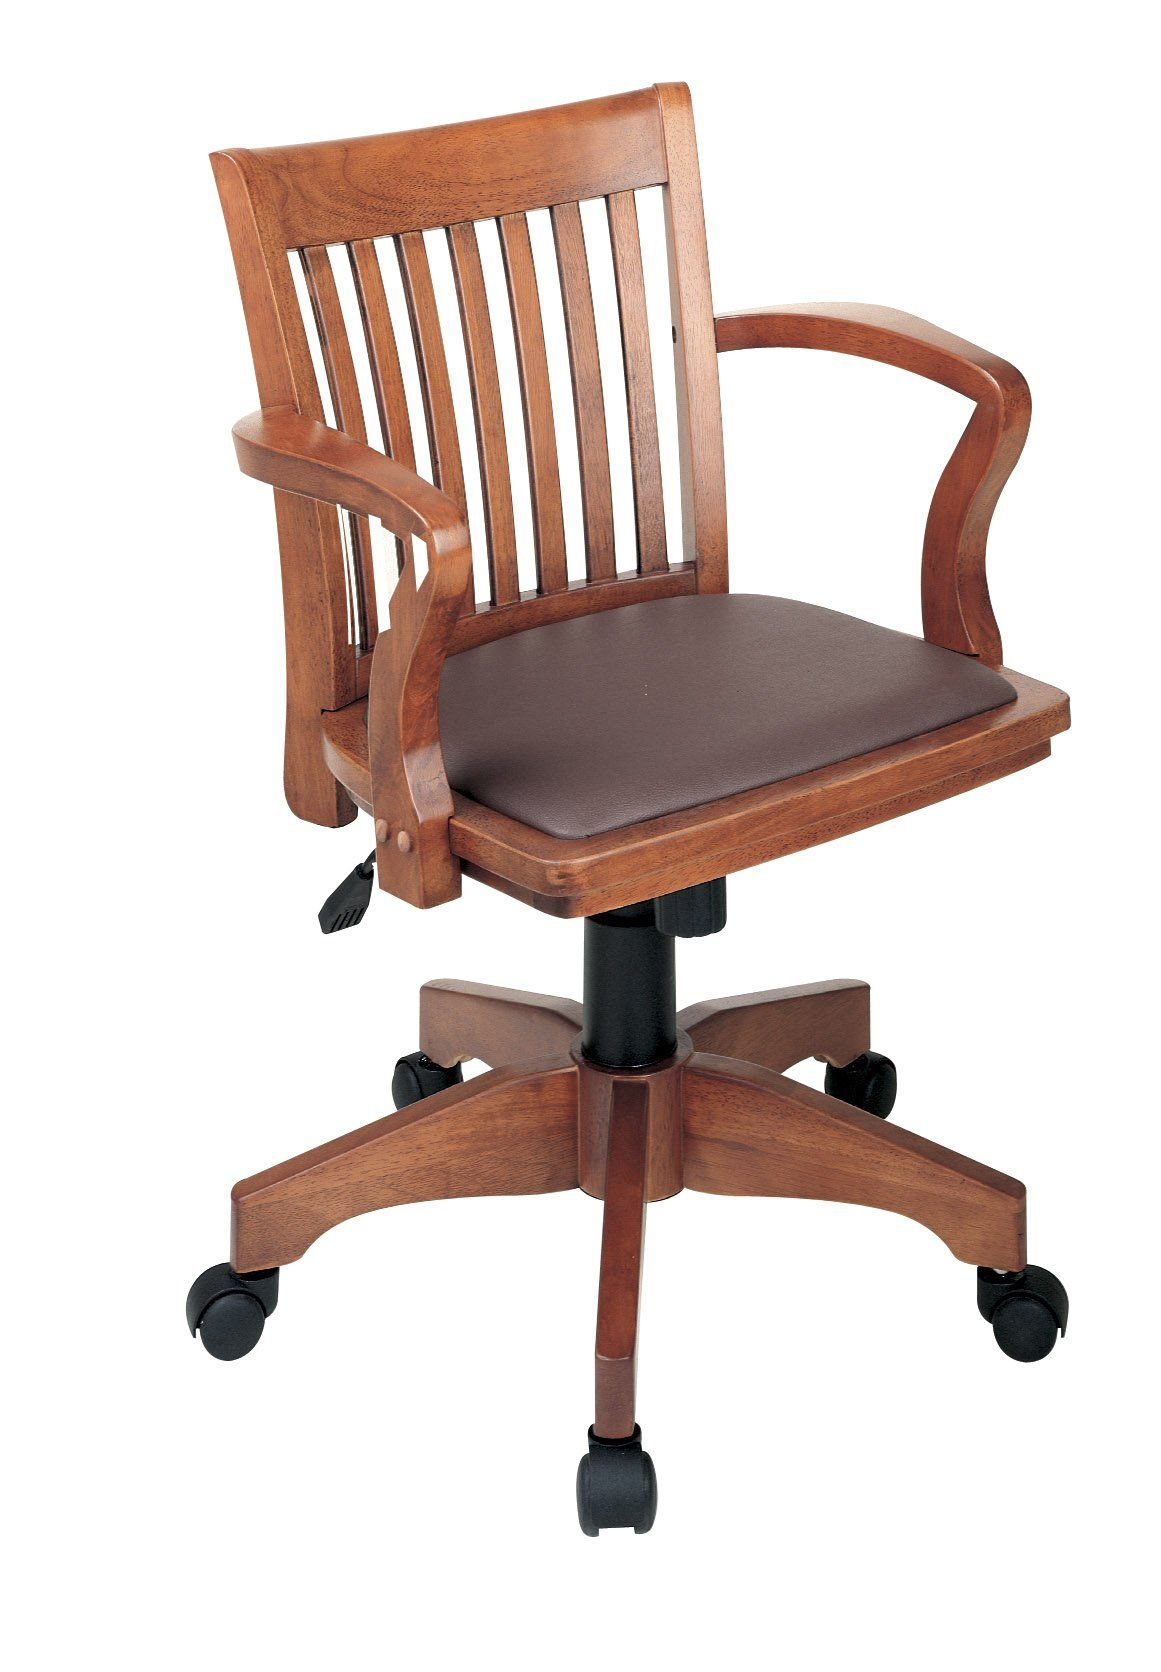 Wood Bankers Desk Chair with Vinyl Seat Done Pinterest